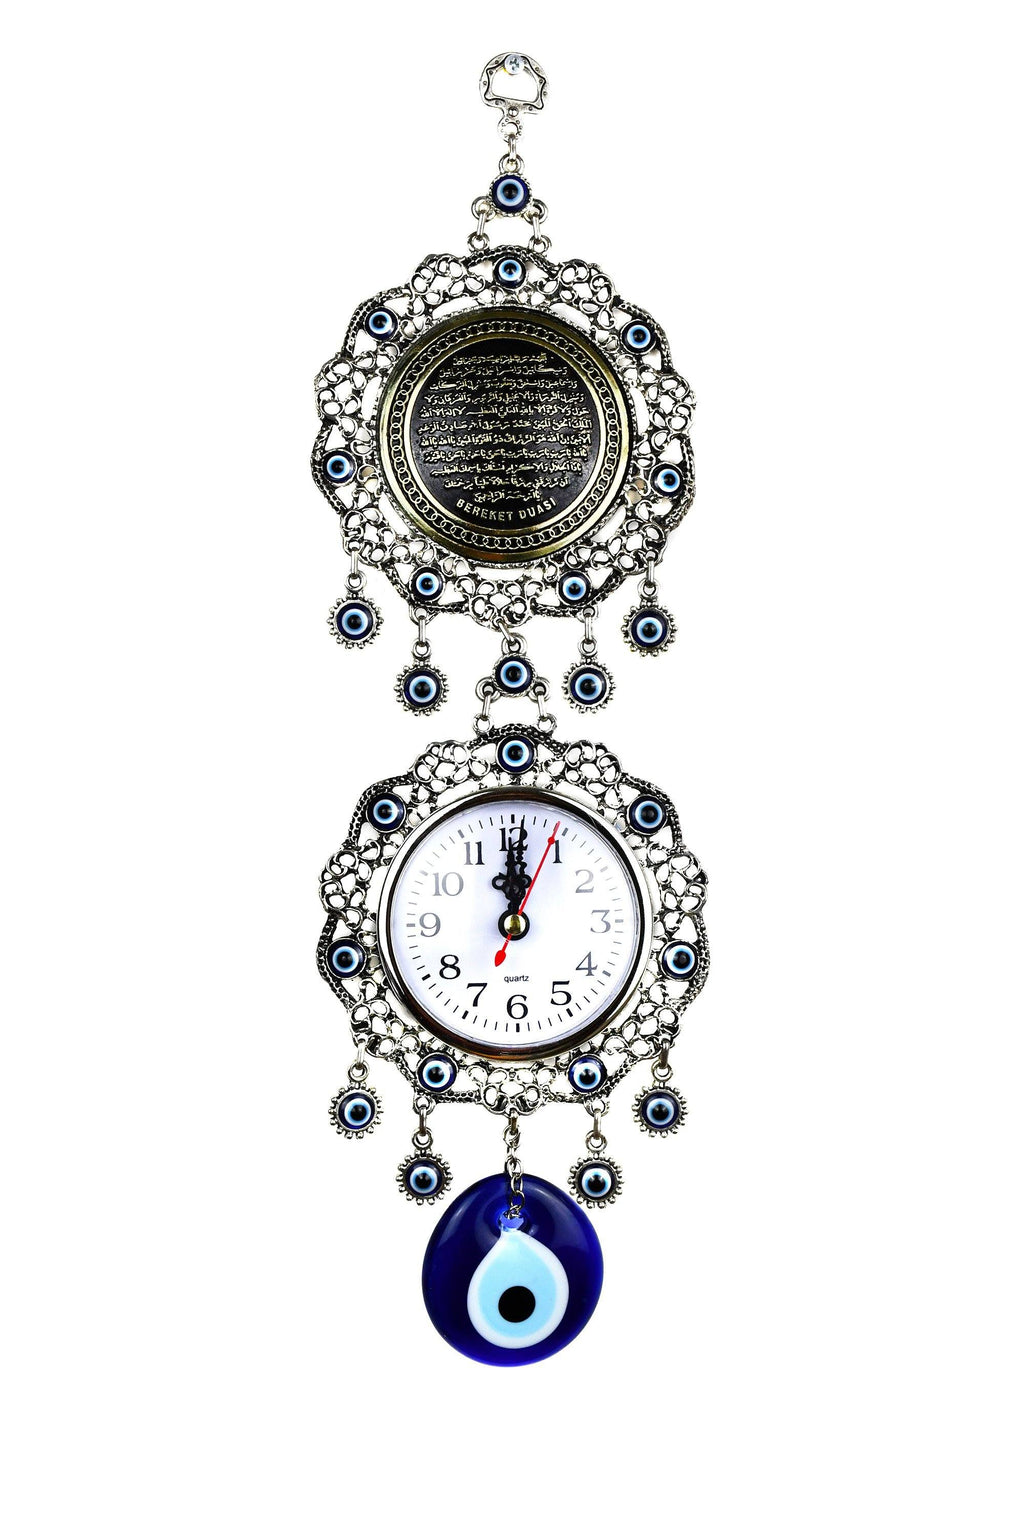 Evil Eye Wall Clock & Religious Barakat Dua Evil Eye Sydney Grand Bazaar